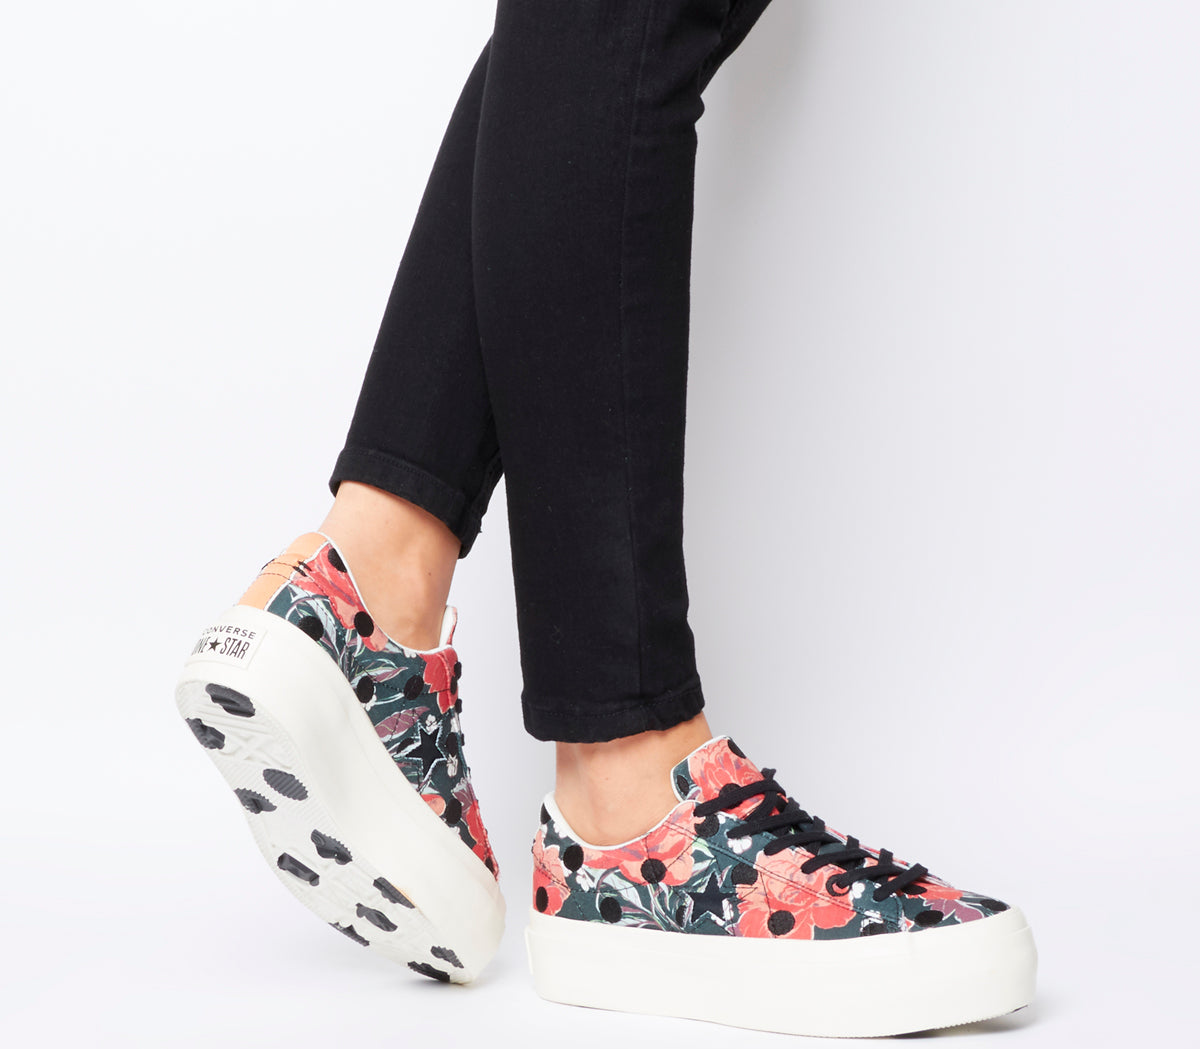 f9f850cec0db Womens Converse One Star Platform Black Nectarine Egret Polka Floral T –  OFFCUTS SHOES by OFFICE